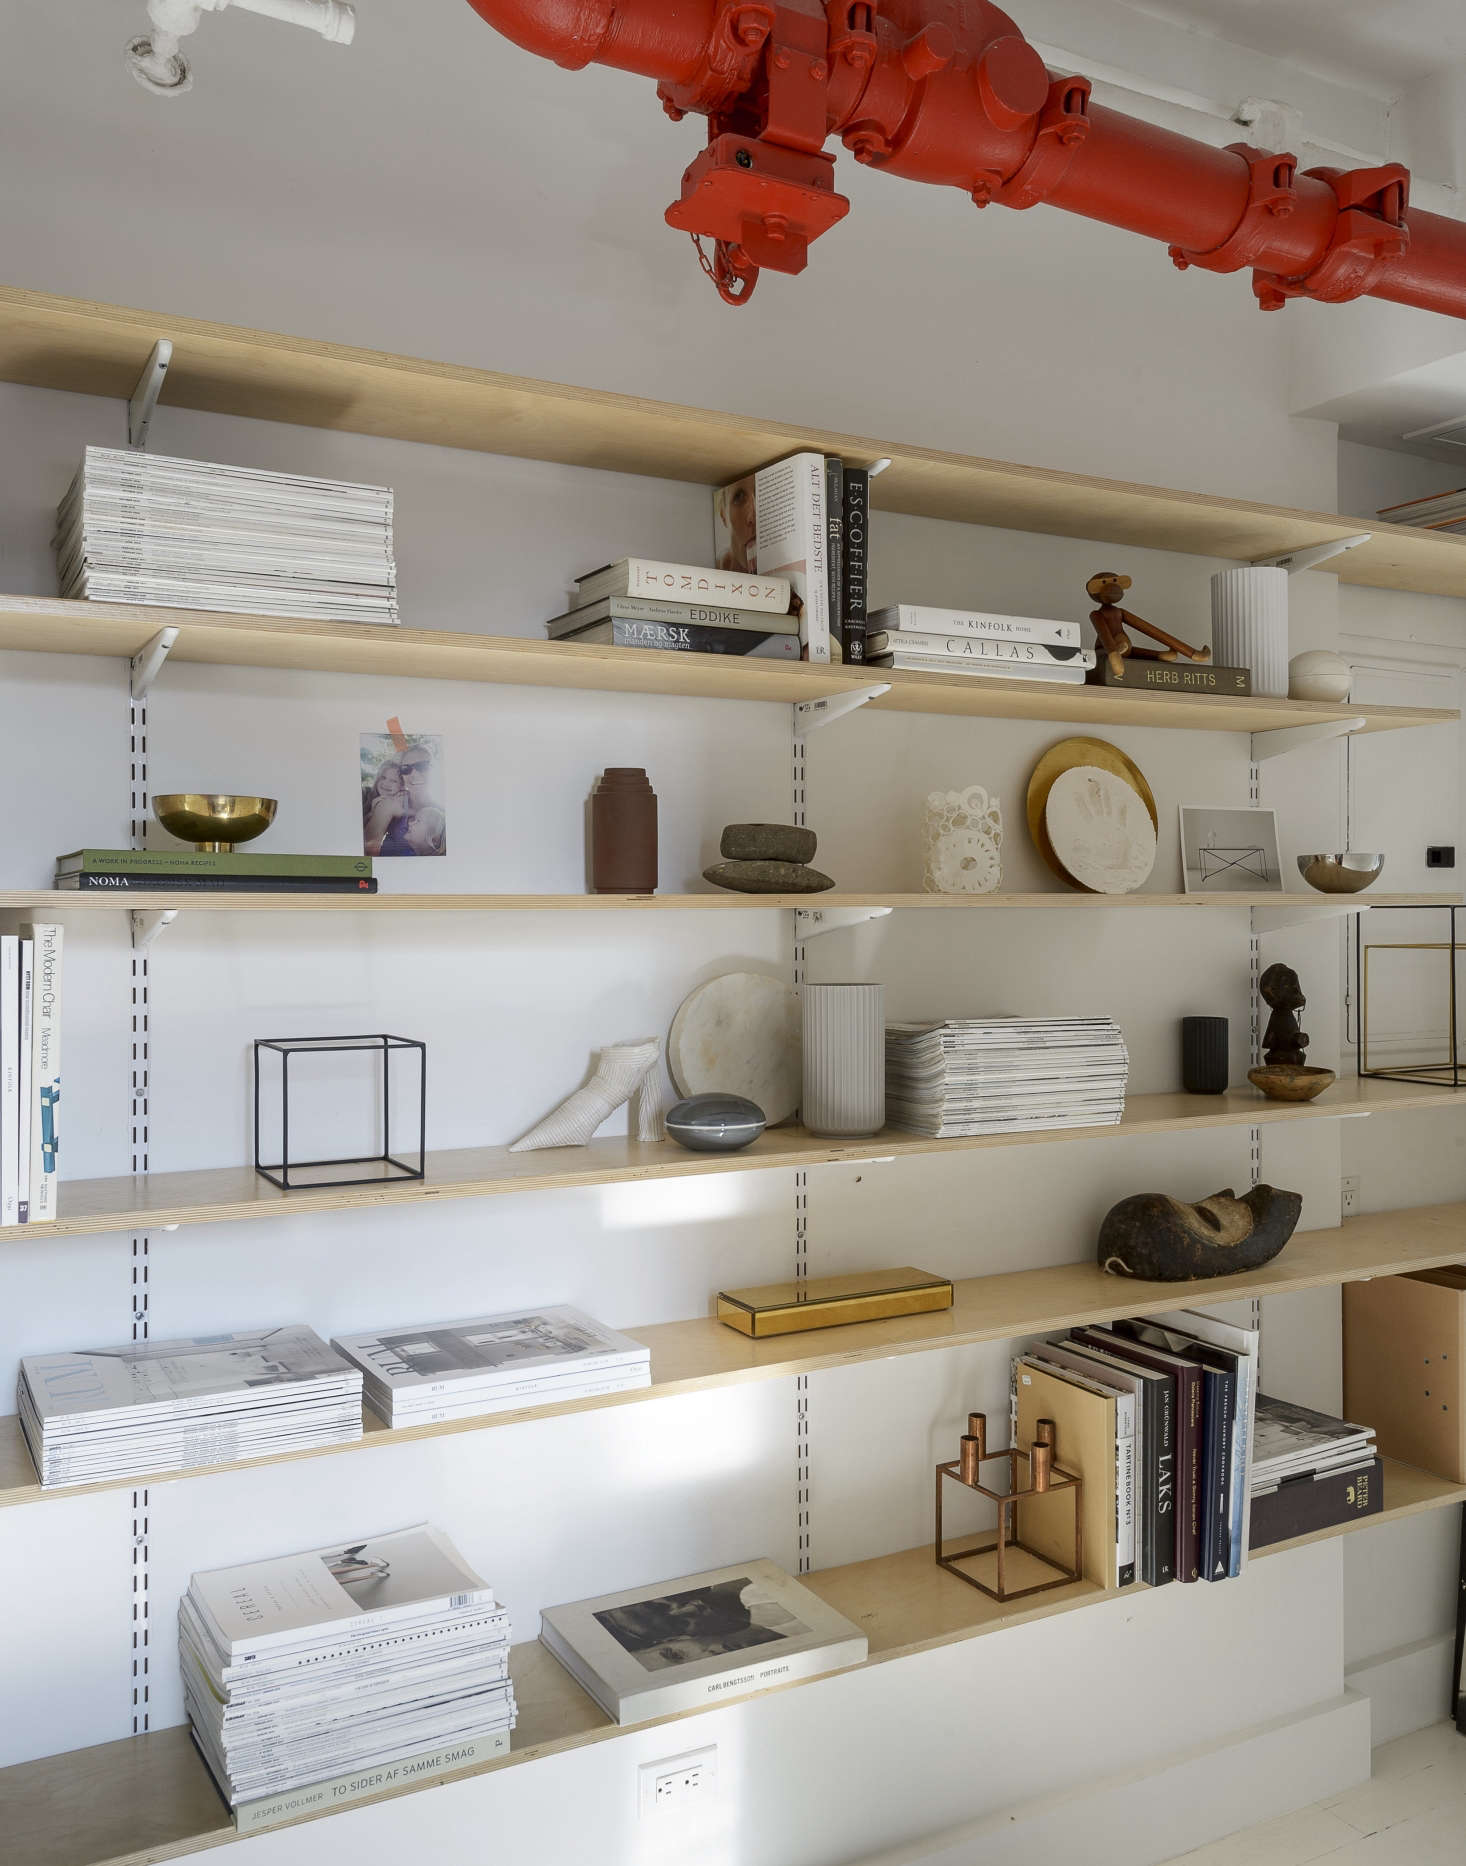 Plywood shelves built from hardware store parts display not only books and magazines but also favorite souvenirs and gifts, including a vintage Kay Bojesen Teak Monkey that Peder's grandmother brought for them when she was 90. Read about the copper cube candleholder in The Kubus Goes Glam.